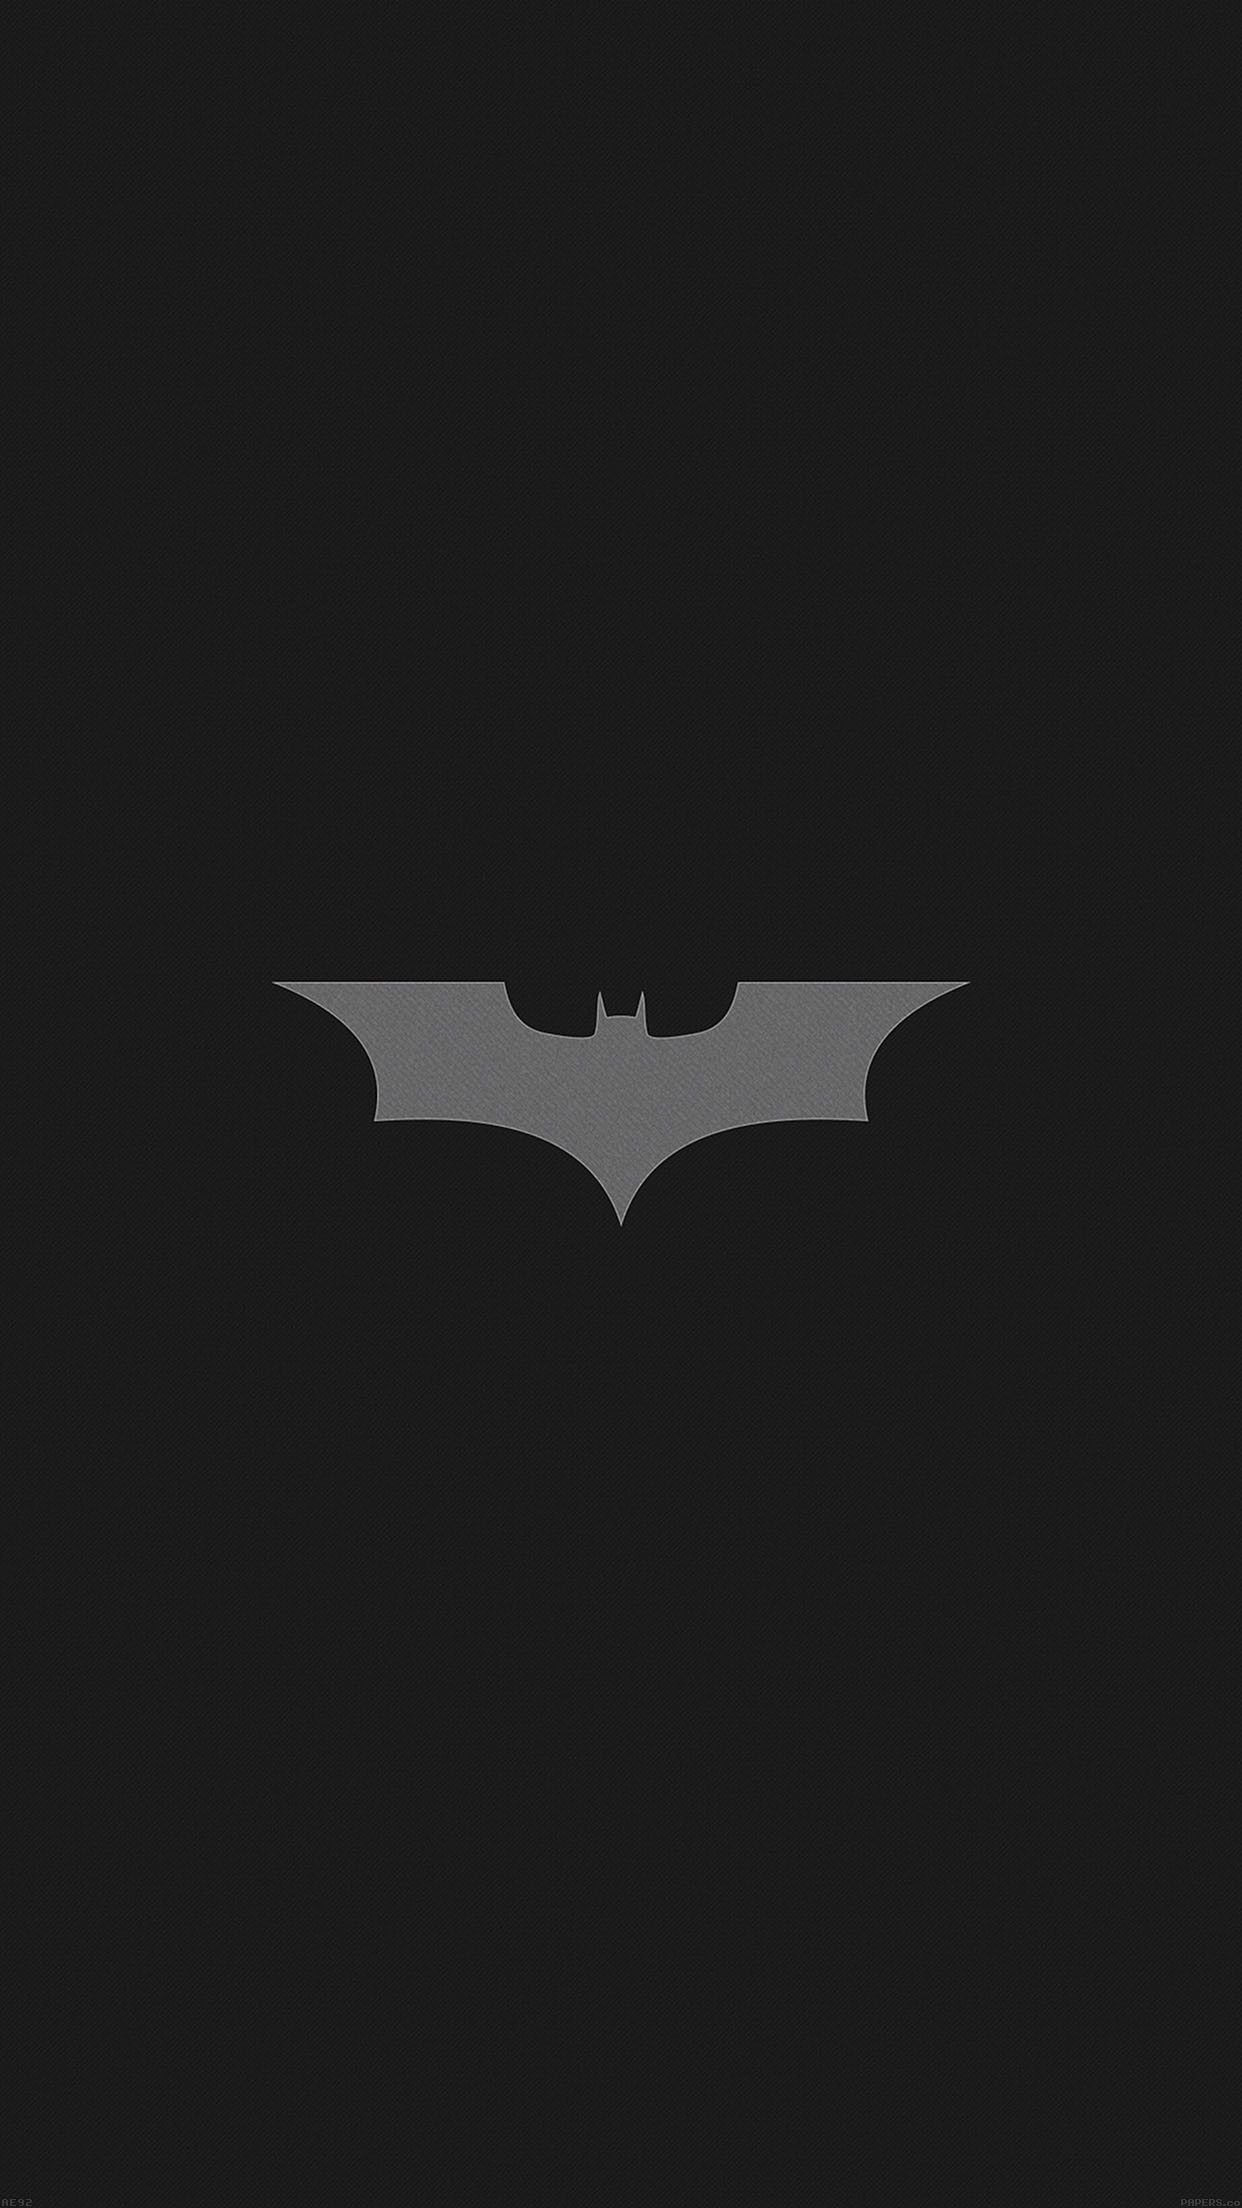 Batman Iphone Wallpaper High Quality Papel De Parede Do Batman